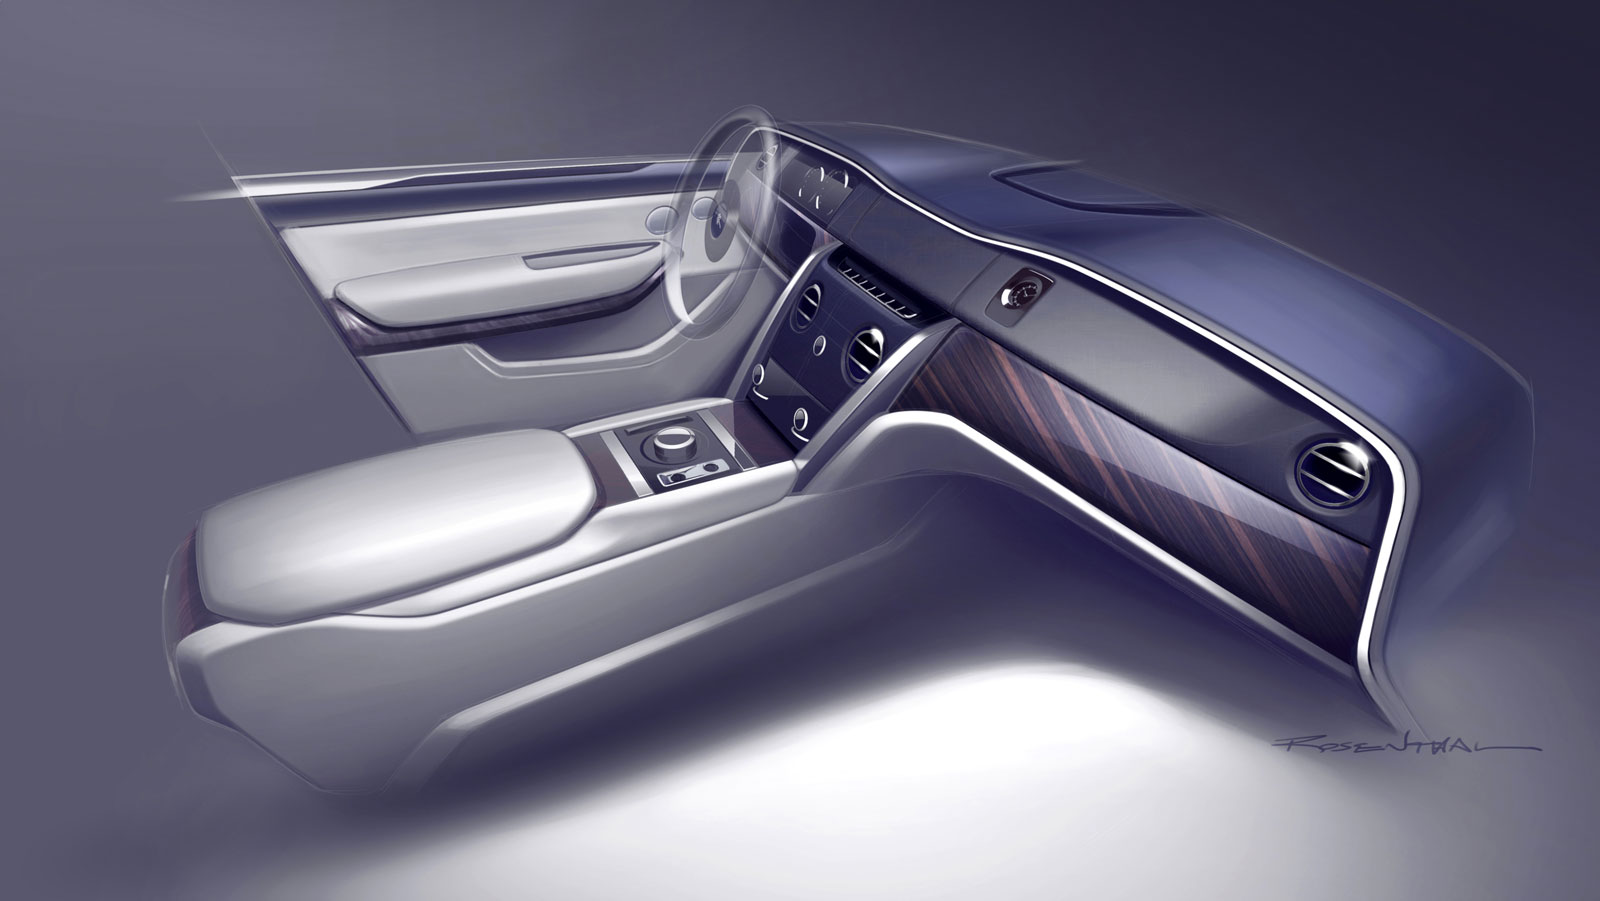 Rolls Royce Cullinan Interior Design Sketch Render Car